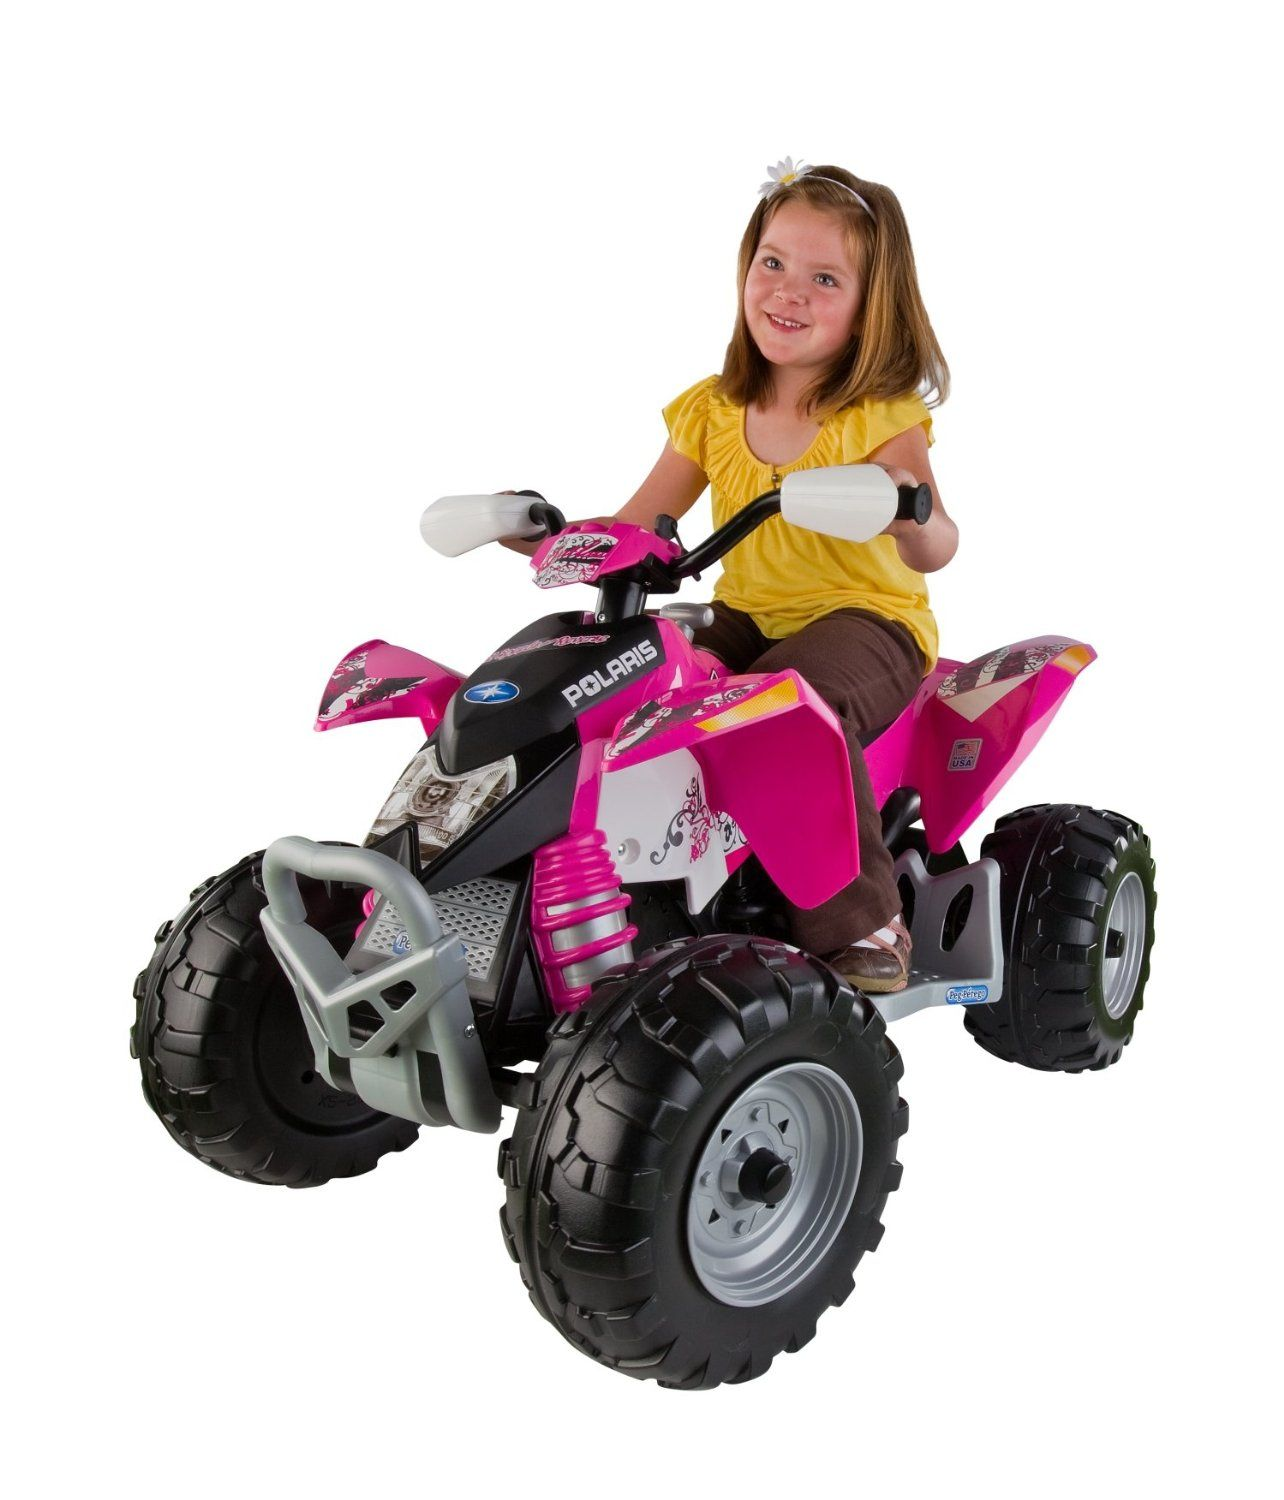 Toys For Kids Girls : Volt ride on toys for girls best outdoor part